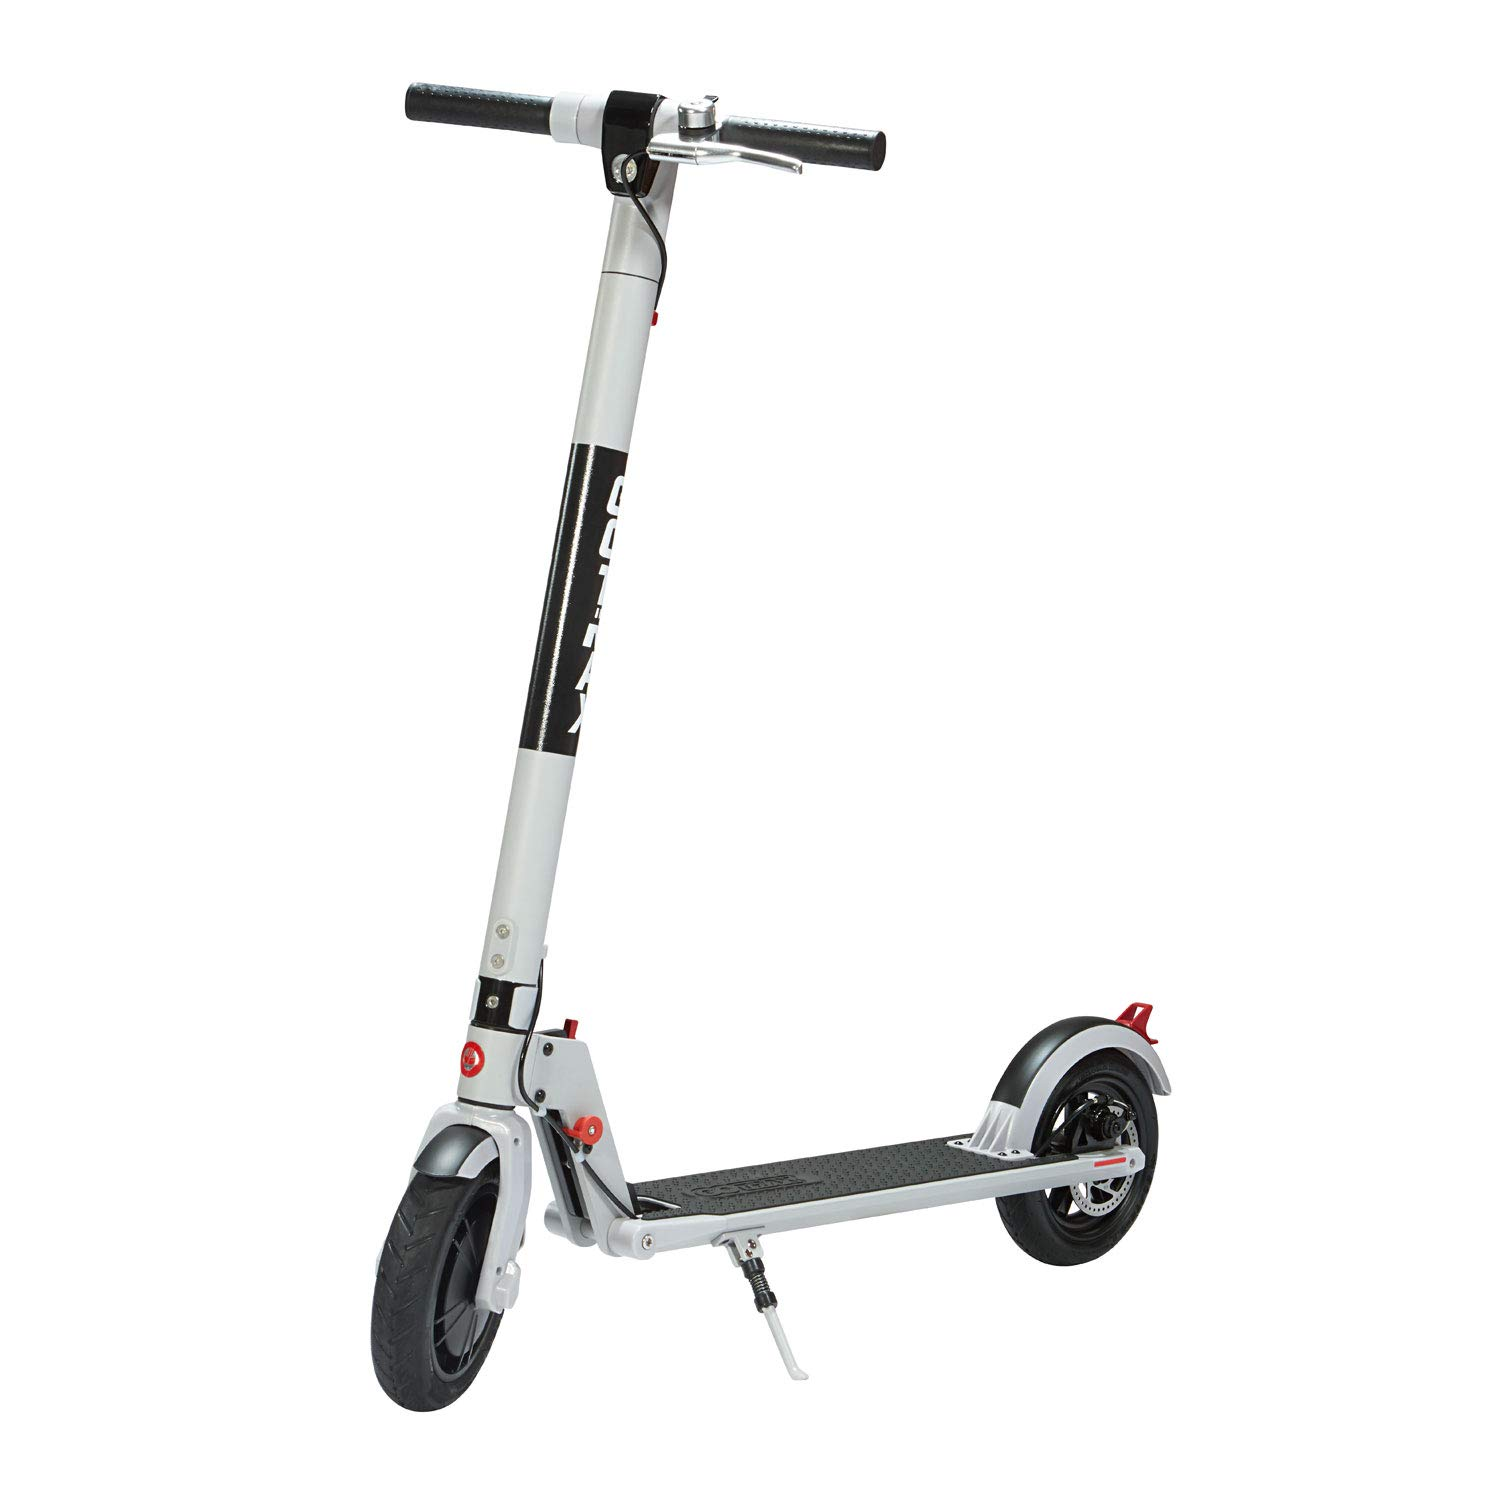 Xr Ultra Folding Electric Scooter